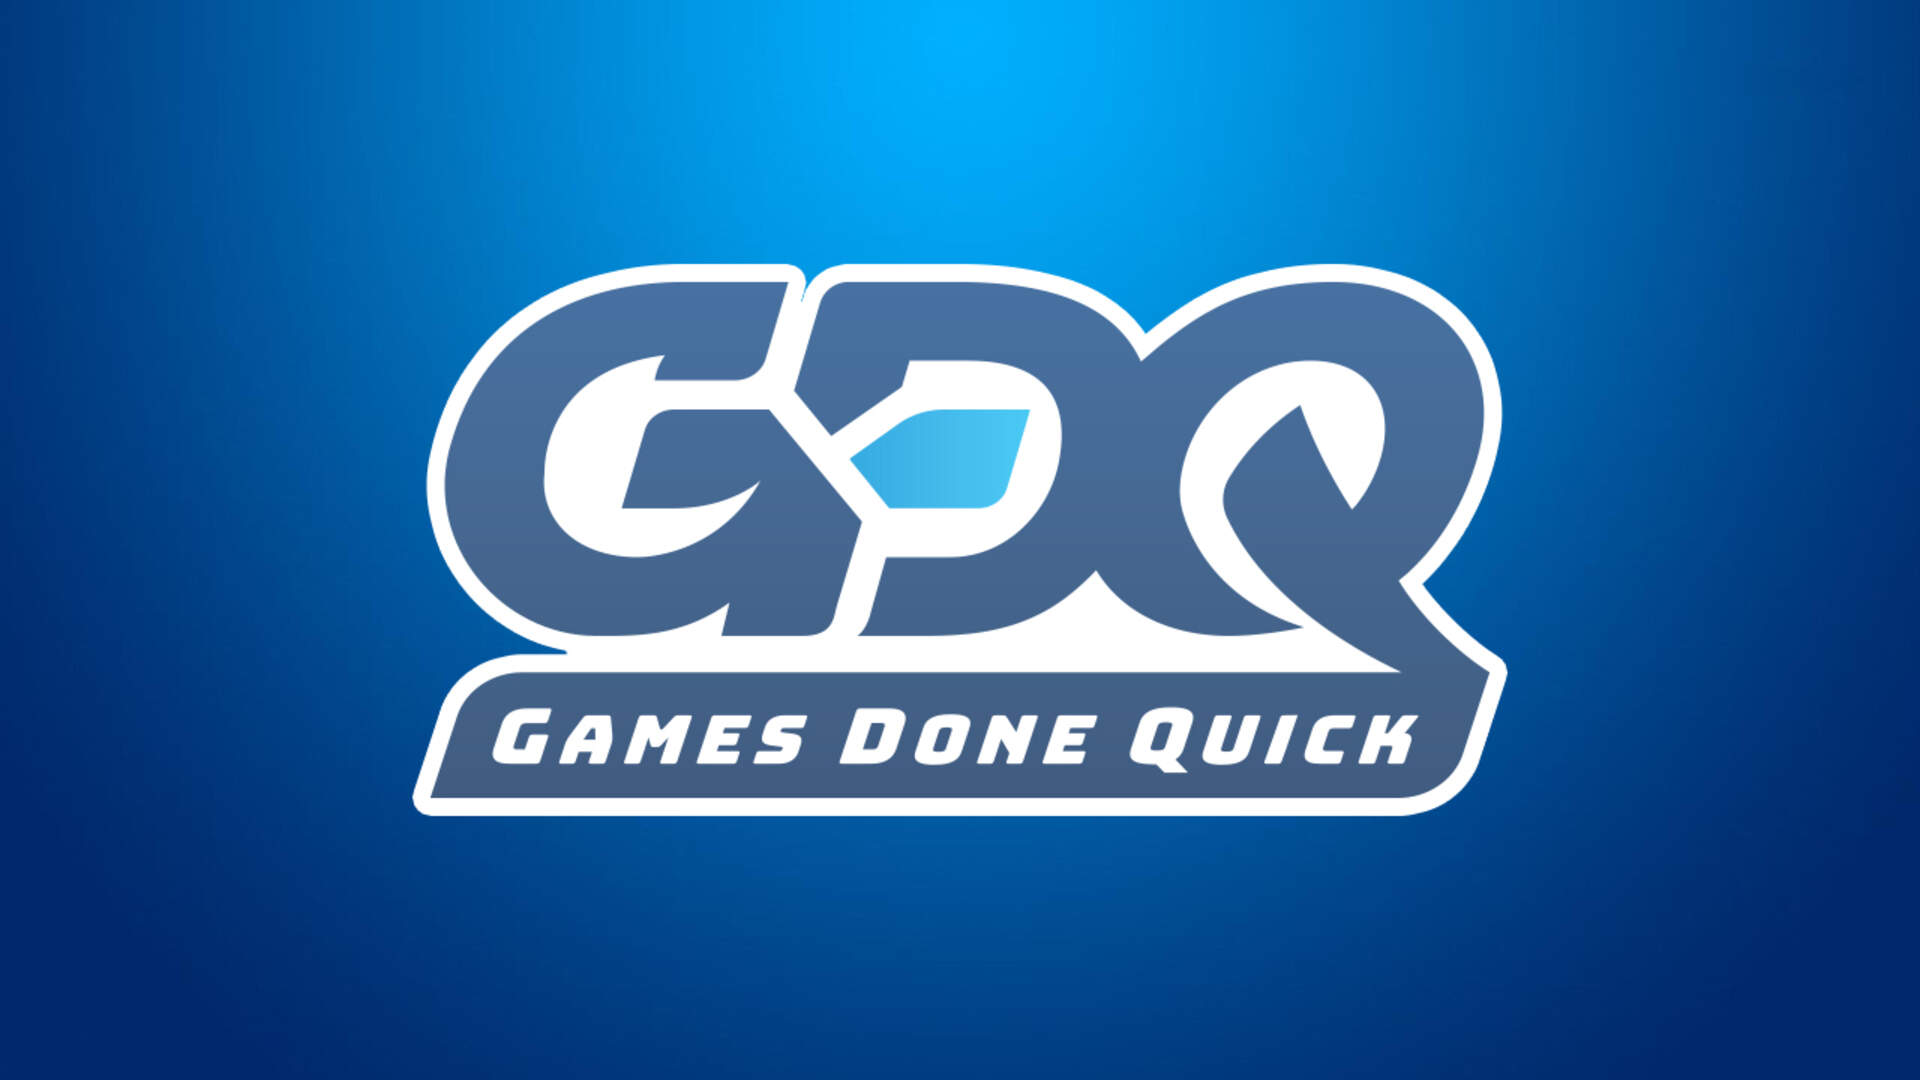 Awesome Games Done Quick 2021 Is Heading Online